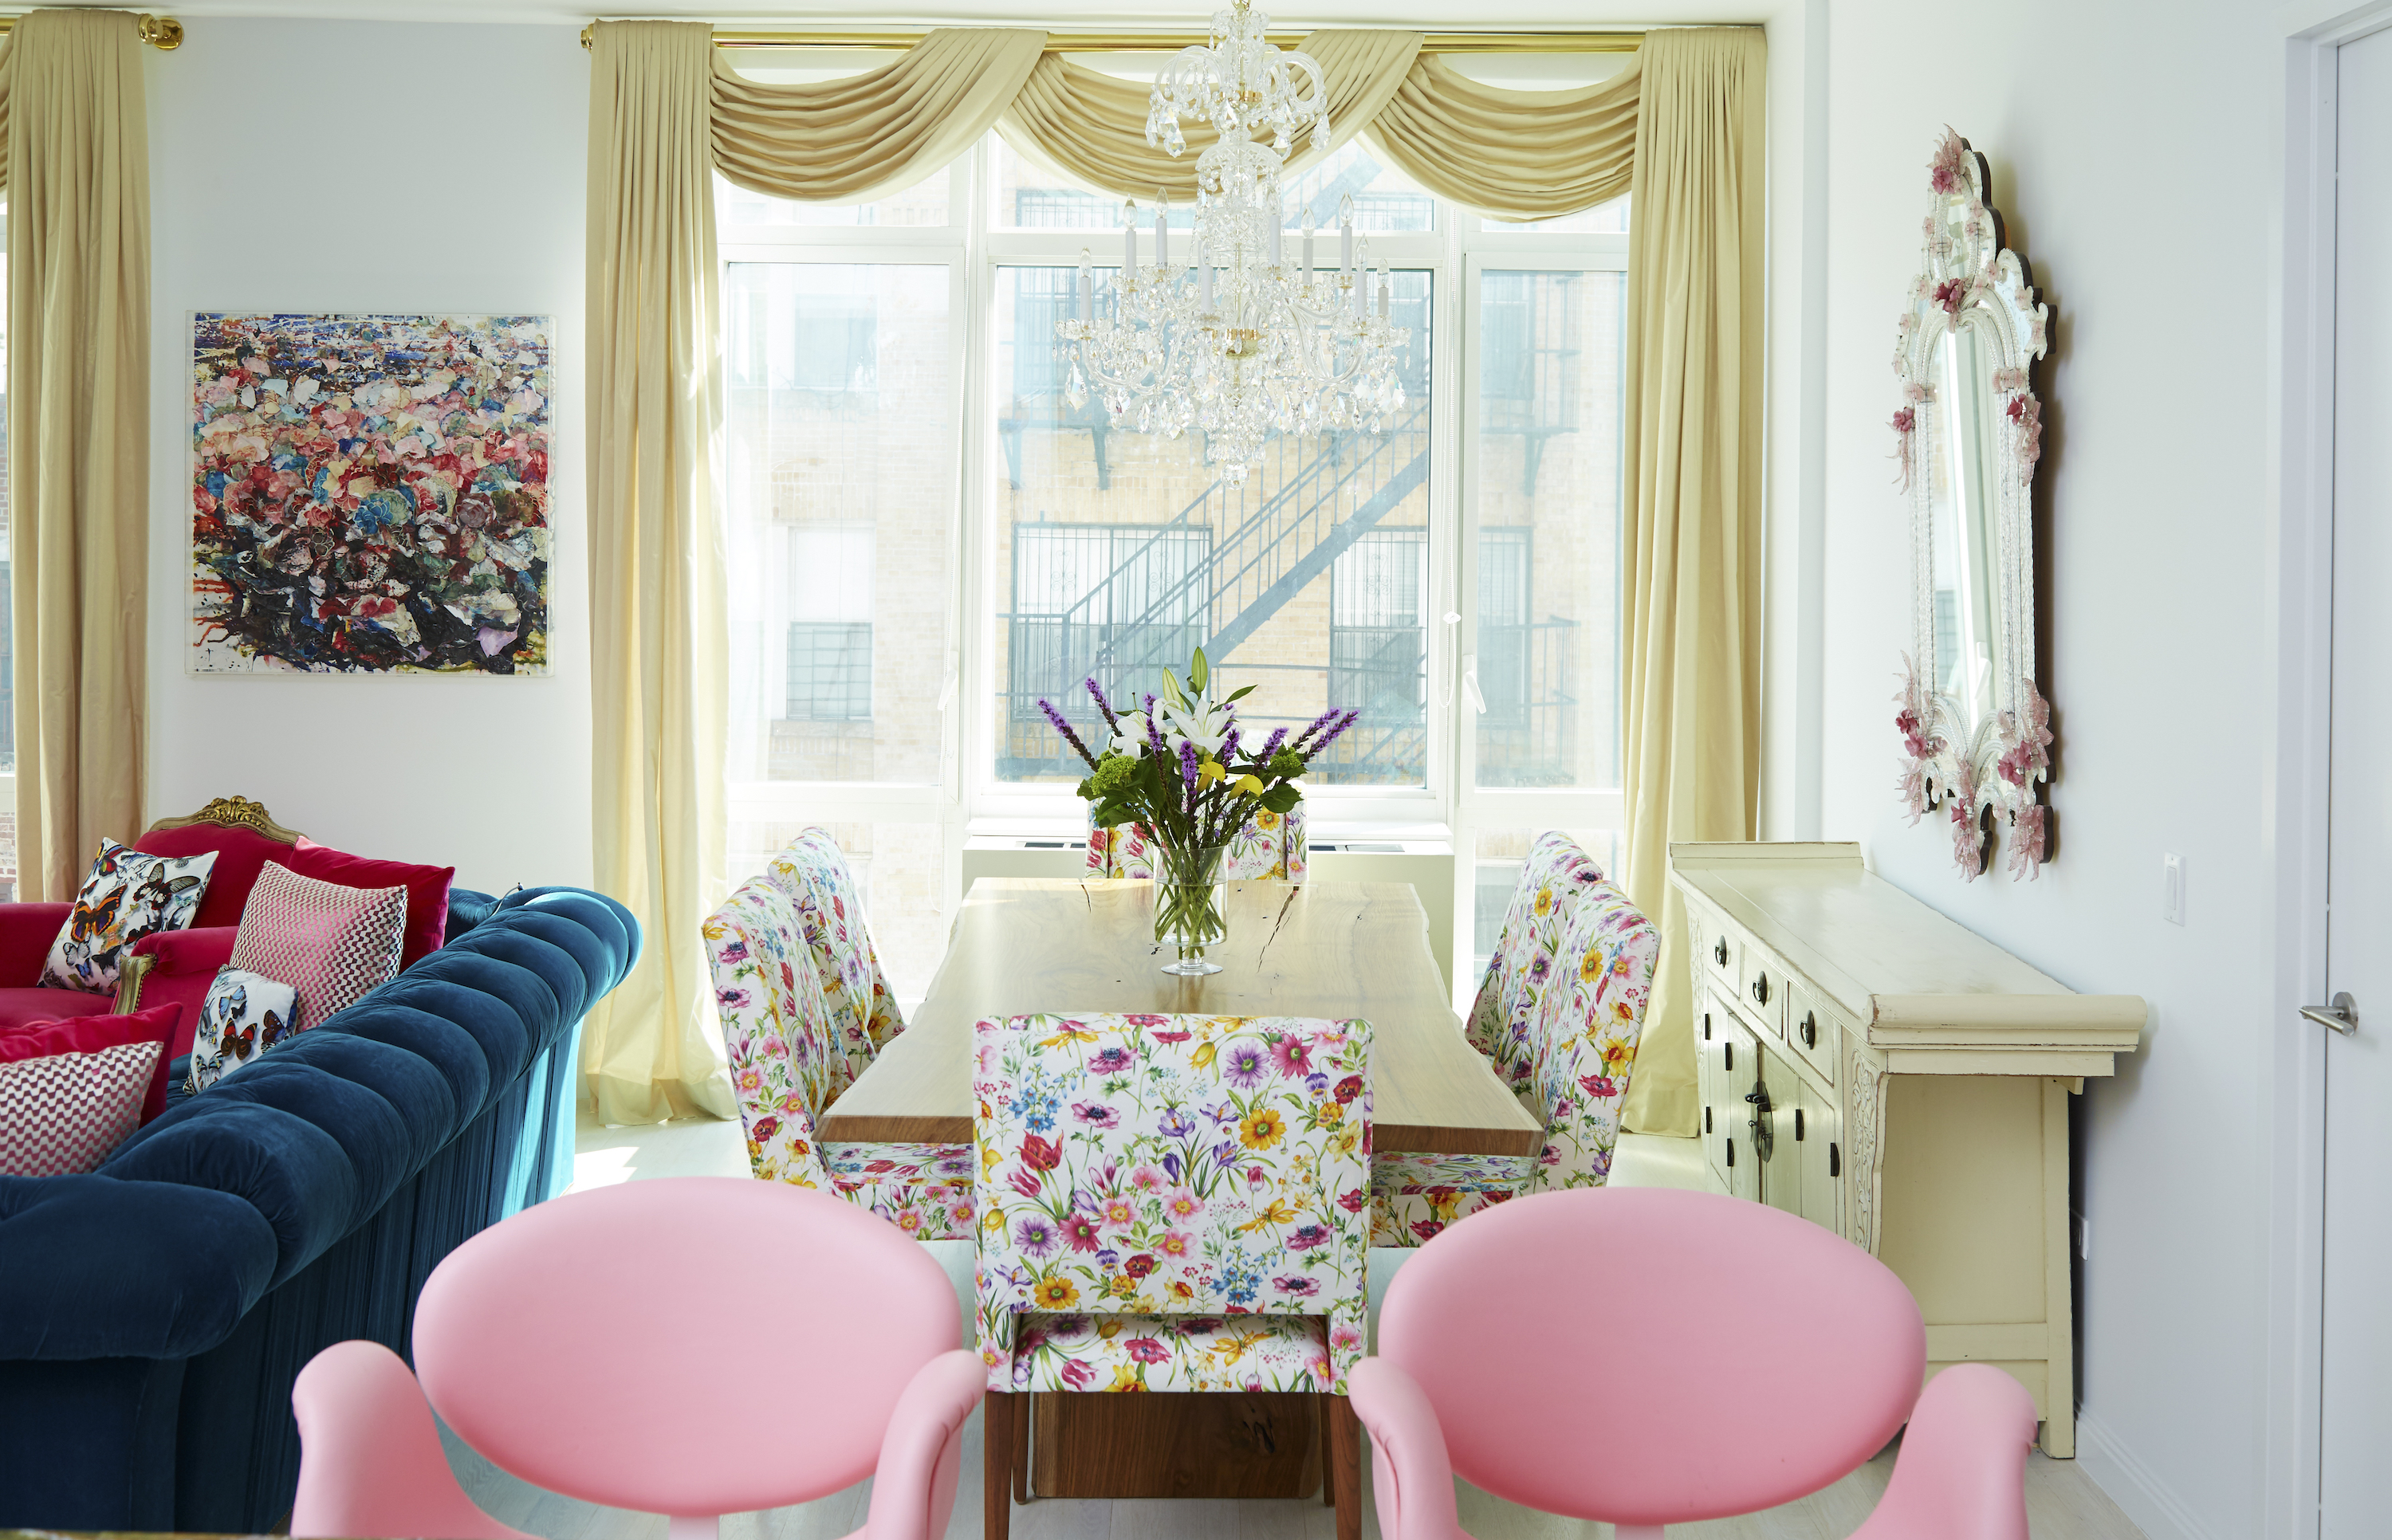 60 Best Home Decorating Ideas - How To Design A Room on Dining Room Curtains Ideas  id=31168